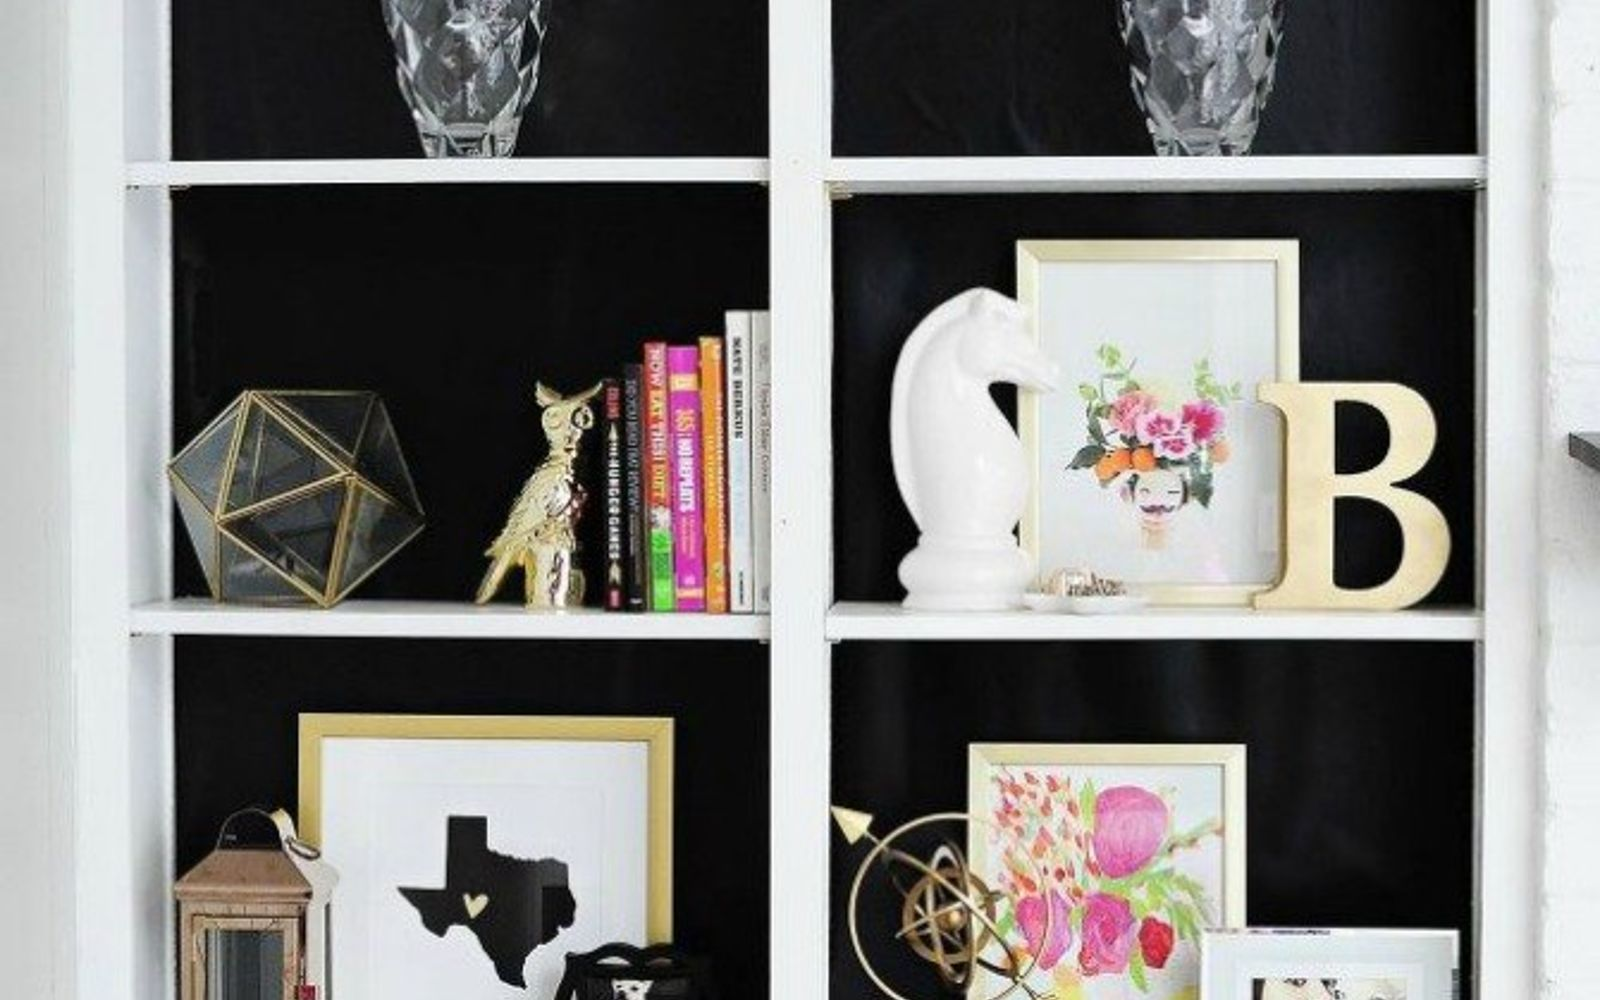 s the 12 brilliant hacks every mom should know, home decor, repurposing upcycling, Update decor quick while kids are at school